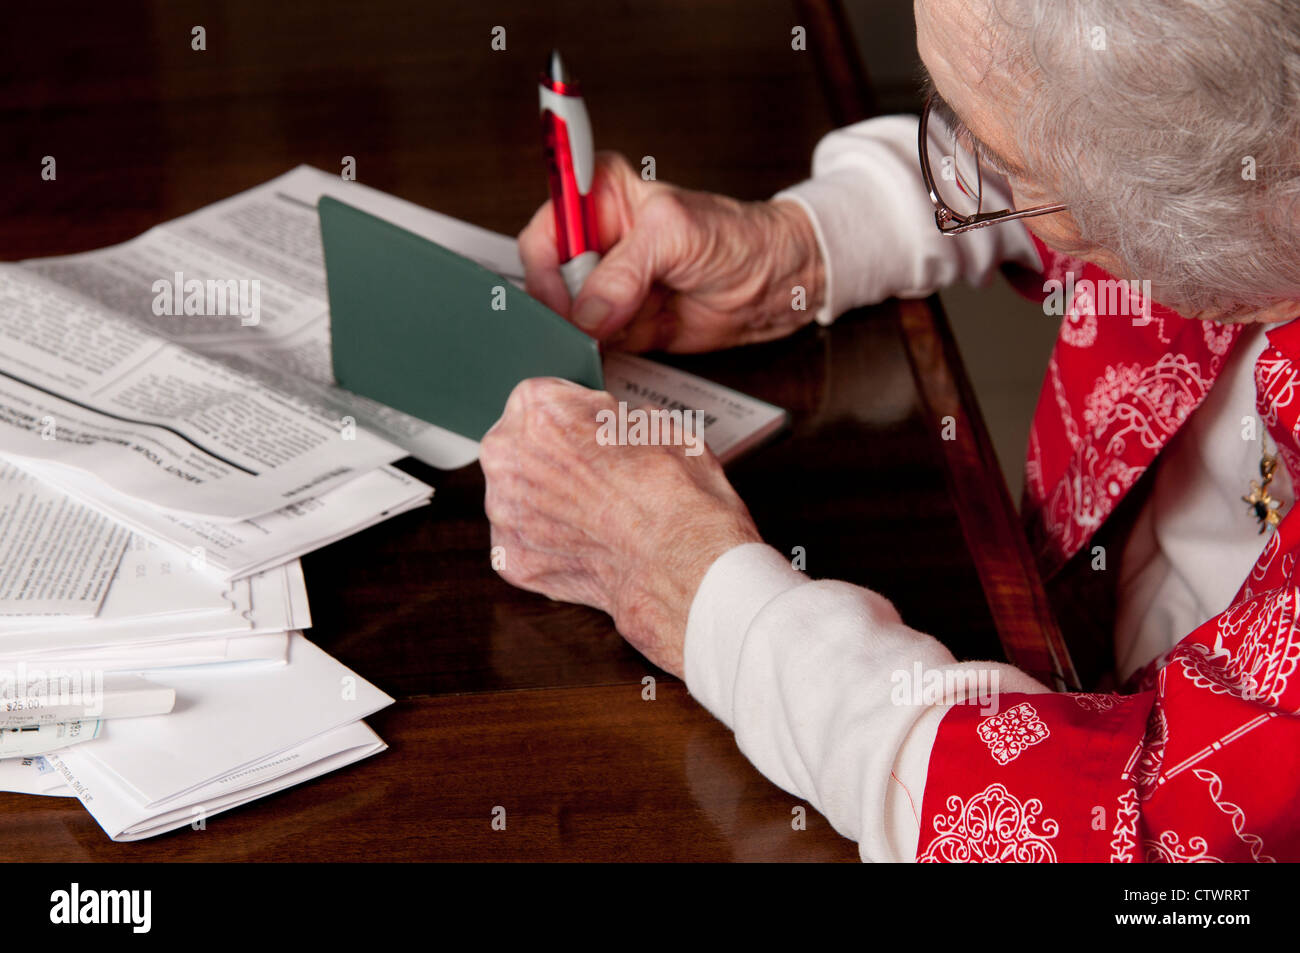 Elderly woman writing a check and paying personal finance bills - Stock Image